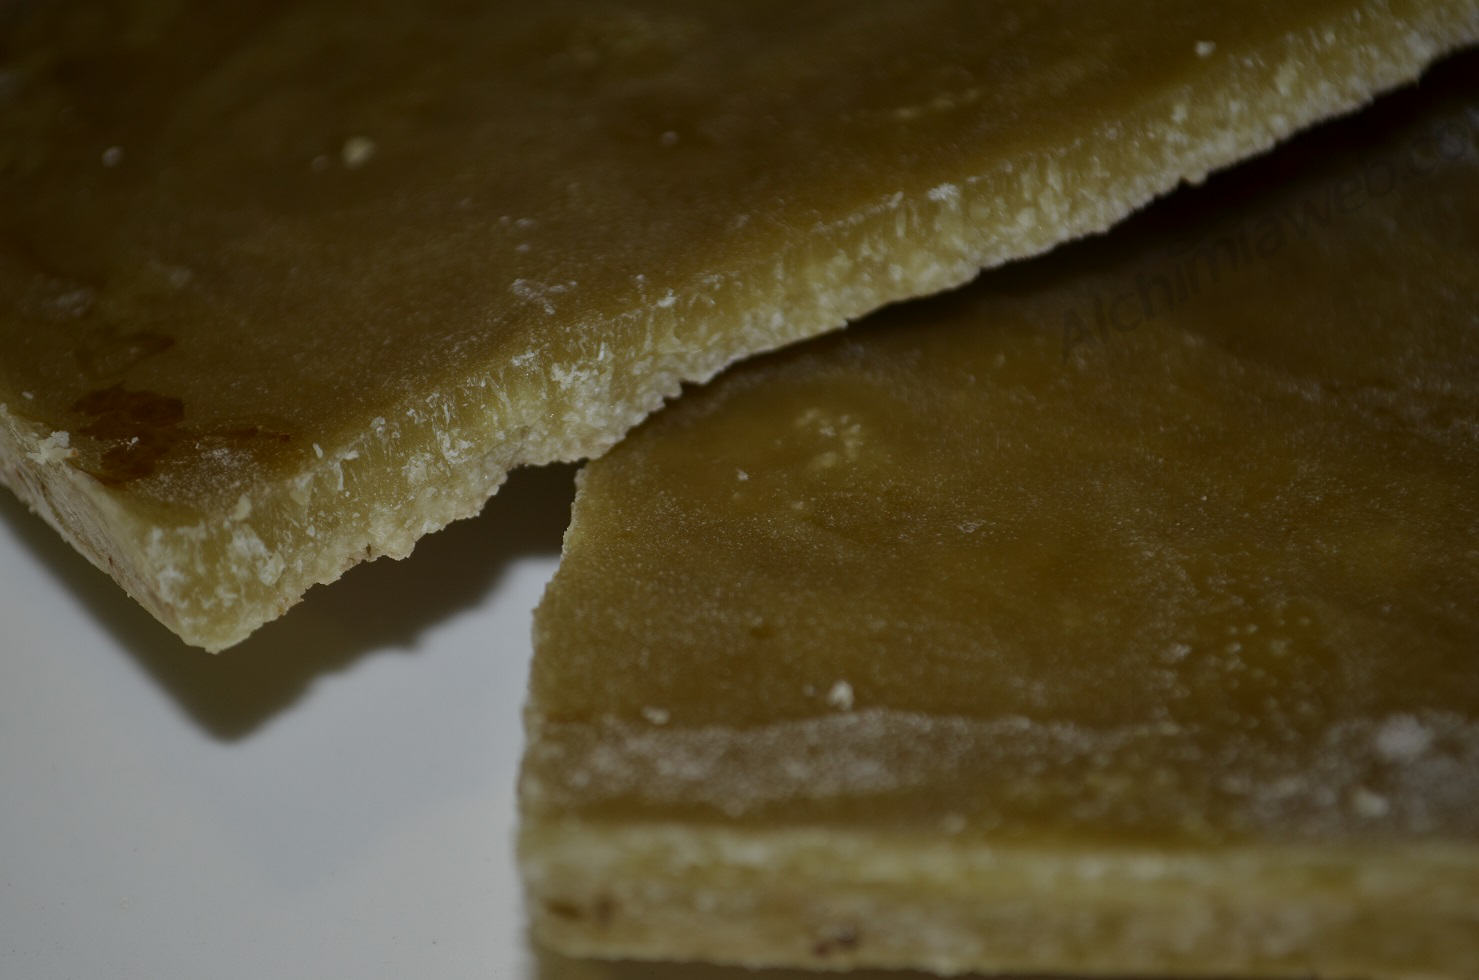 The solidified oil after the cannaboid extraction process